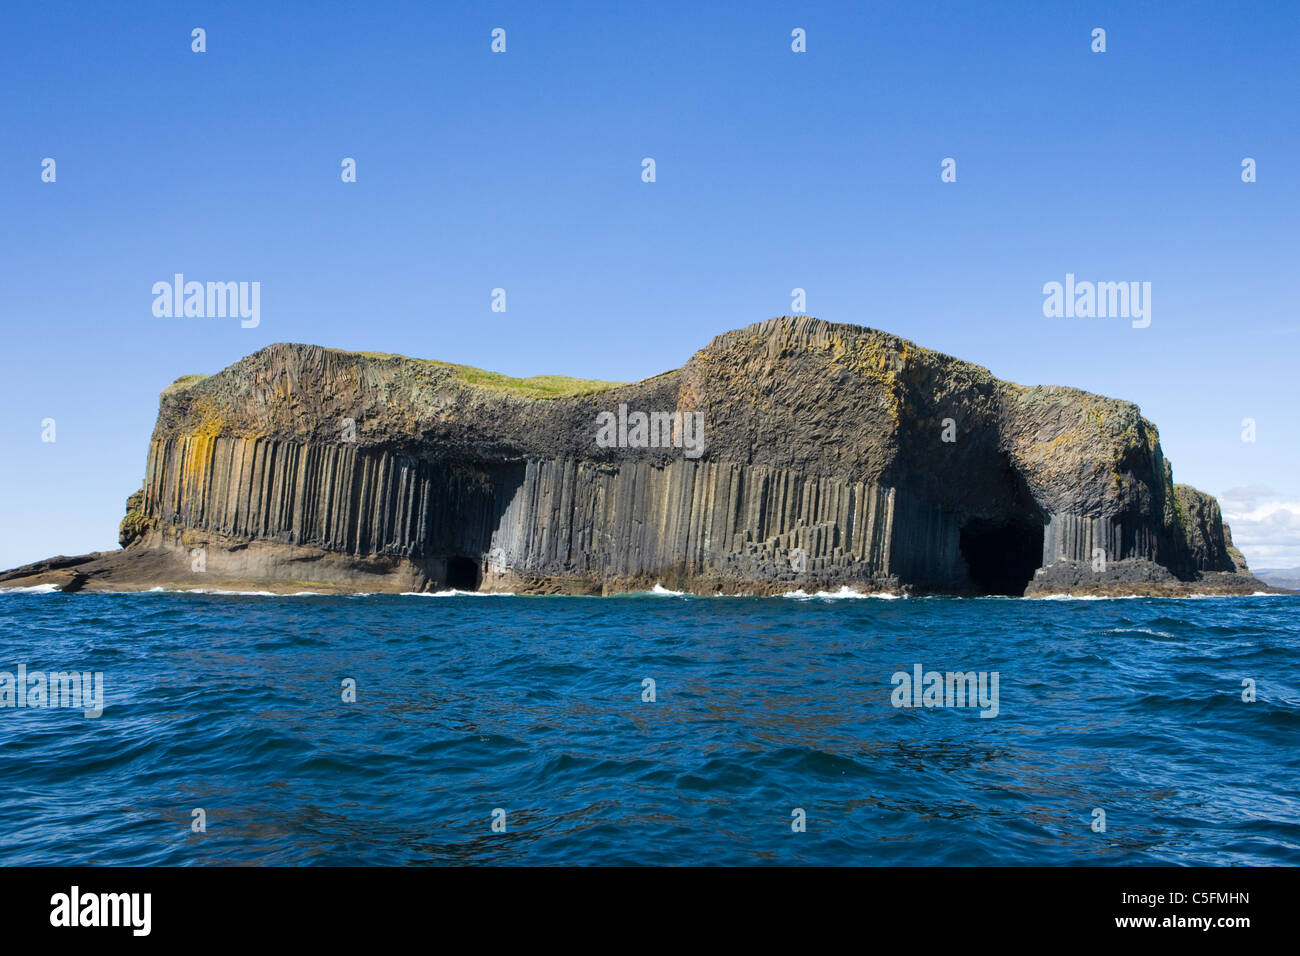 Staffa, Fingal's Cave on right, Boat Cave on left. Scotland, UK. - Stock Image